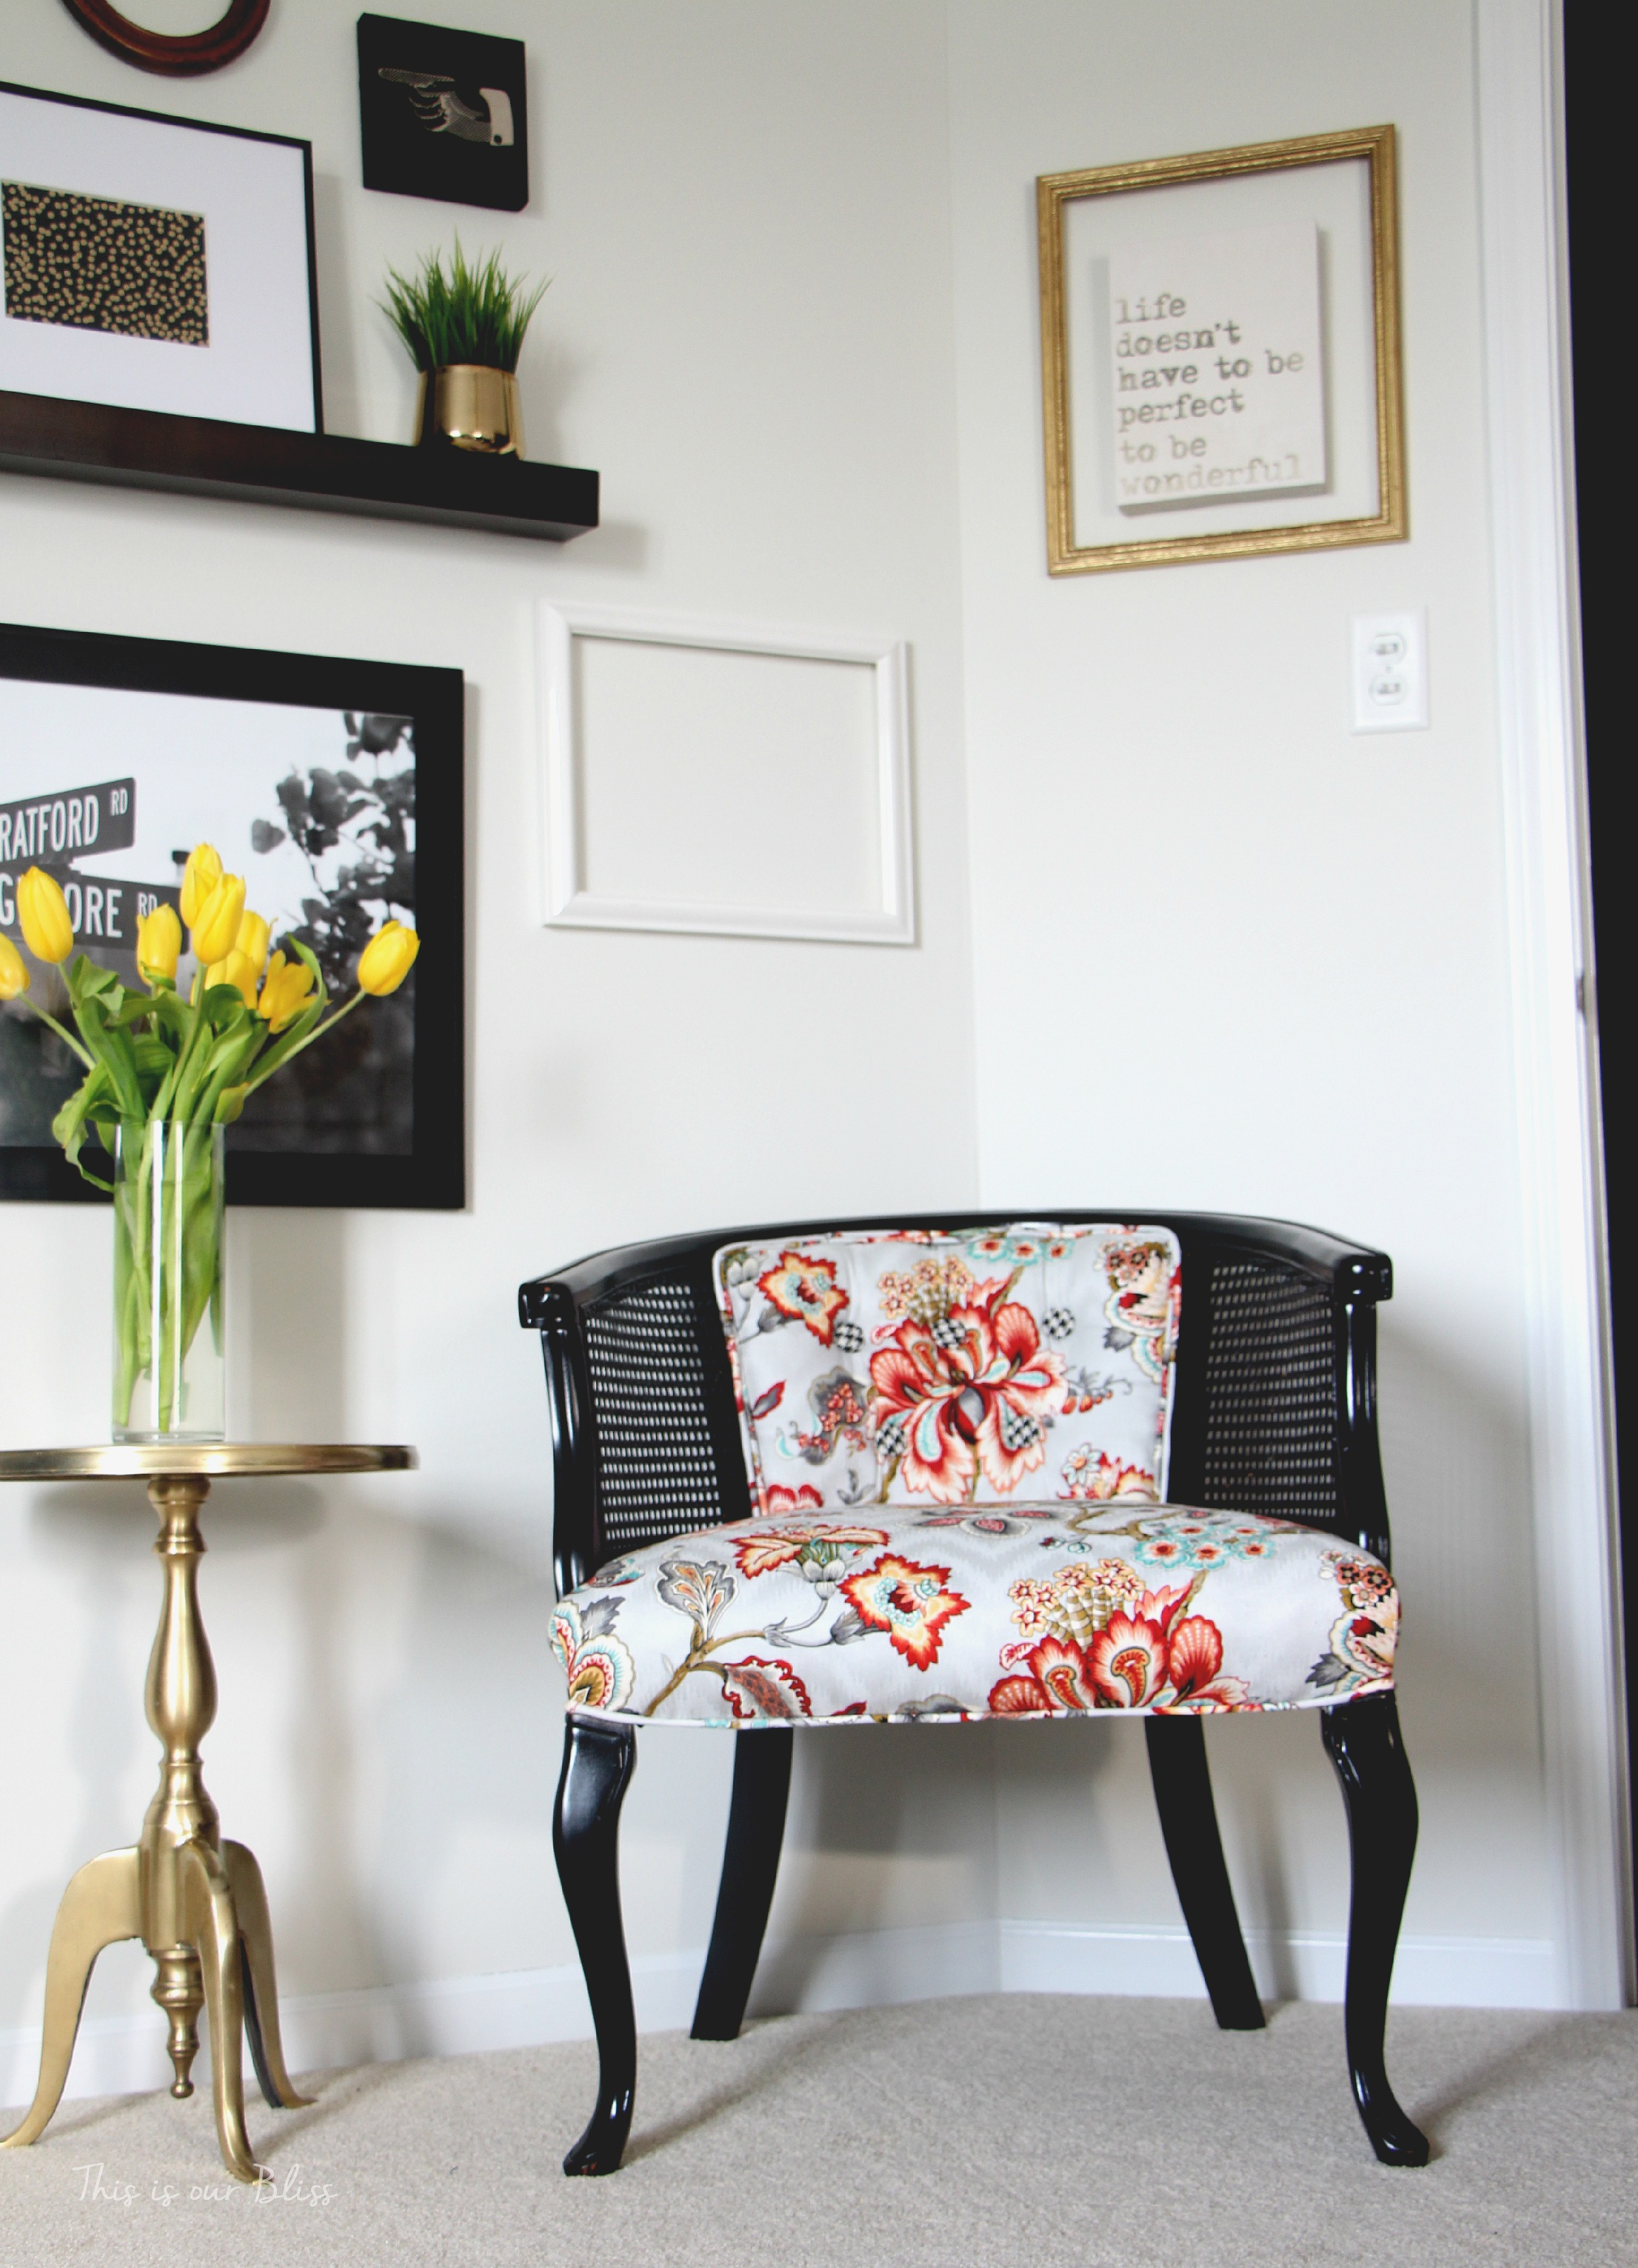 Guestroom Reveal | One Room Challenge Spring 2015 | This is our Bliss